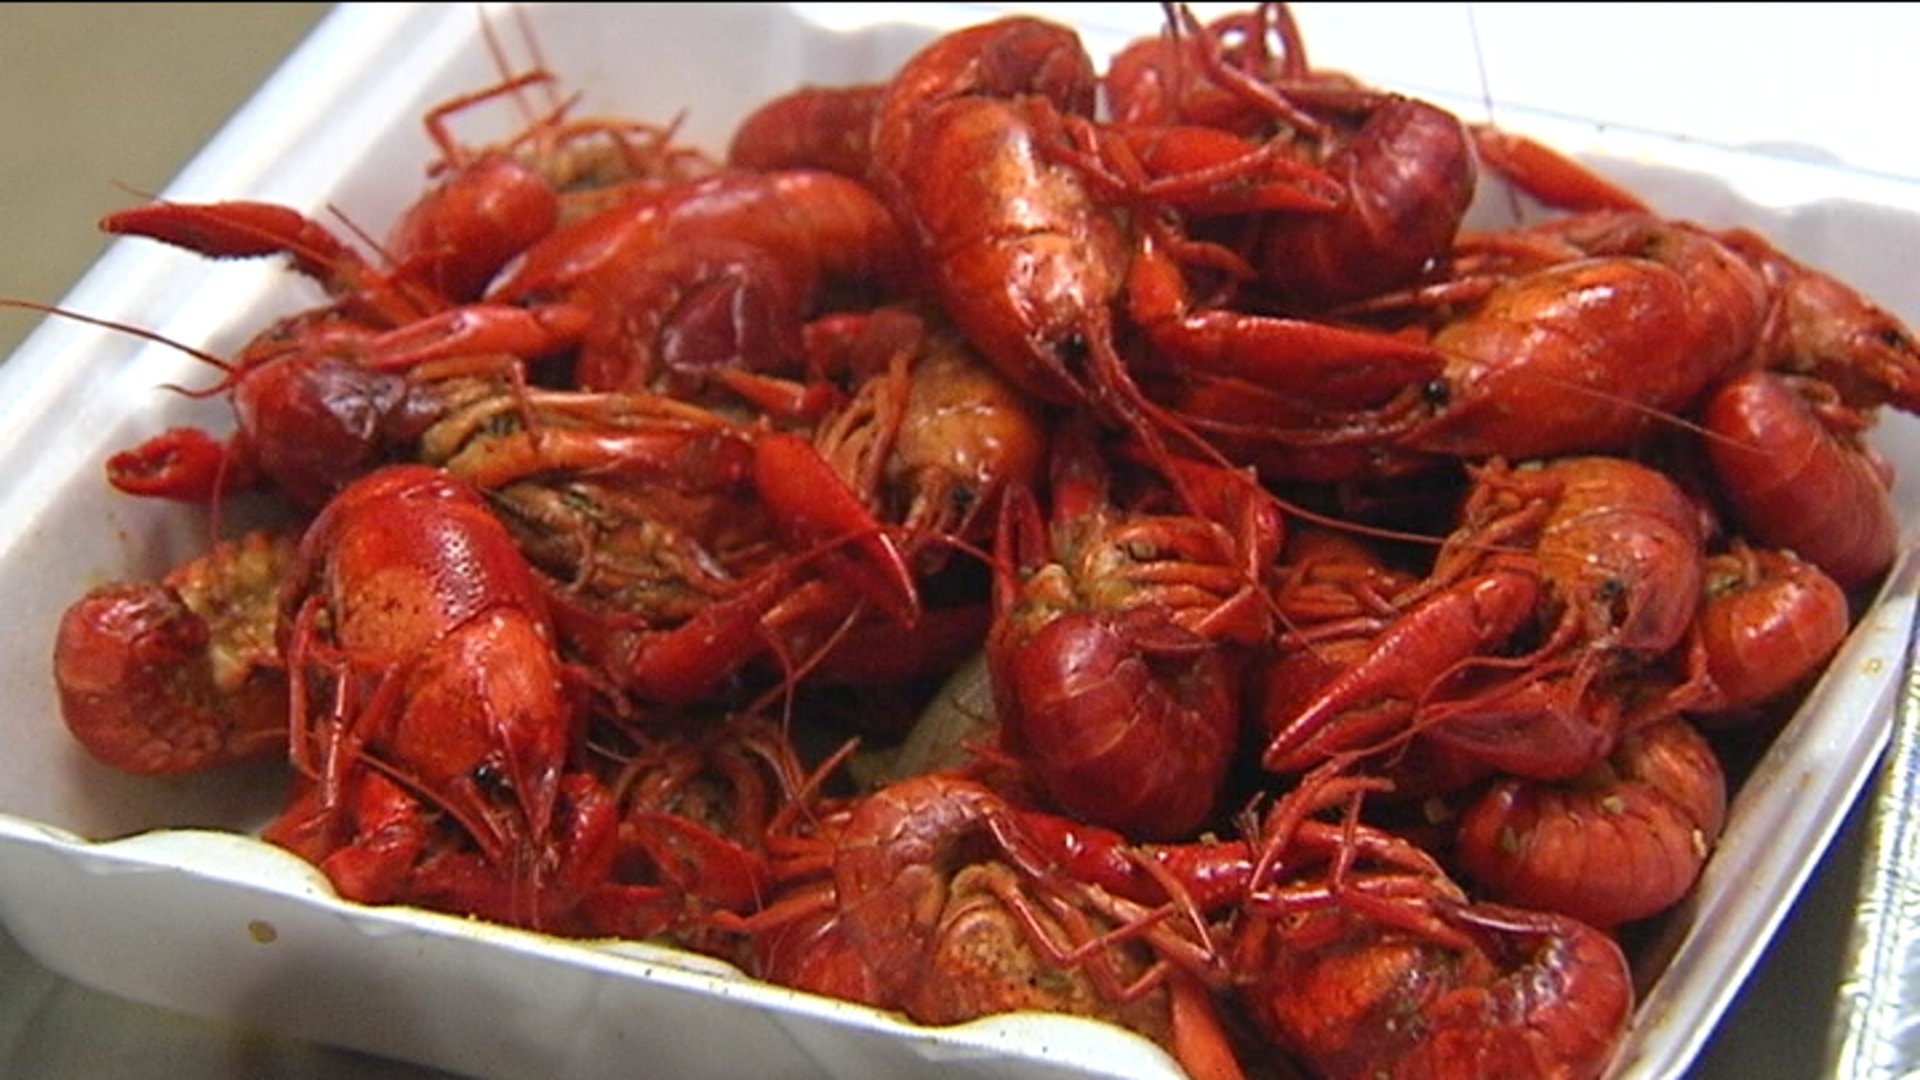 crawfish_1455060866341.jpg